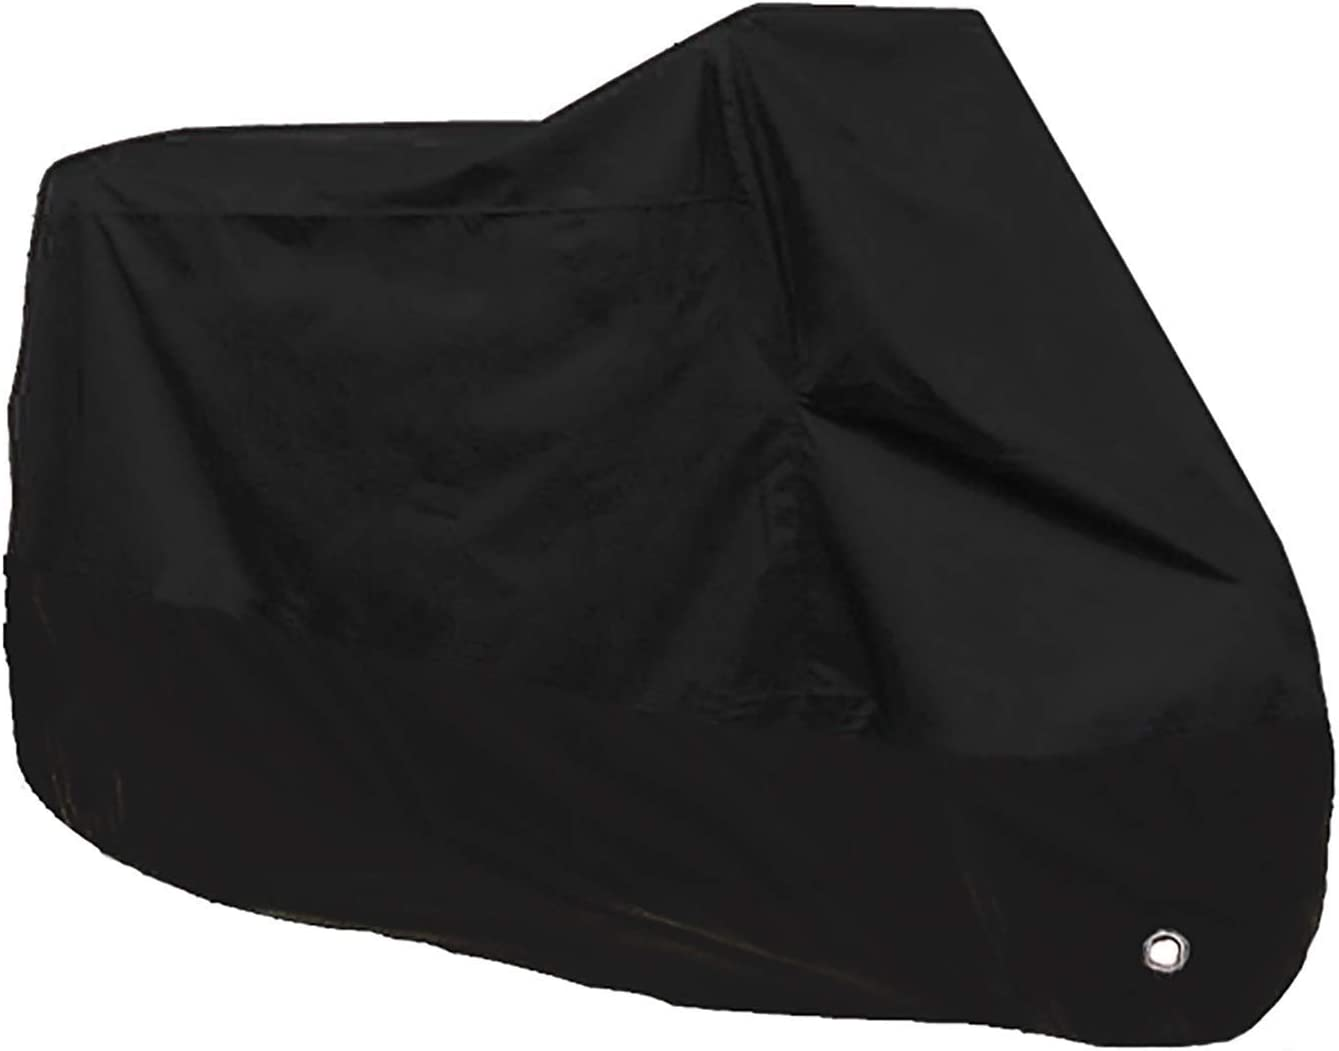 ACHsj Motorcycle Dedication Cover Powersports Vehicle w Compatible Max 45% OFF - Covers